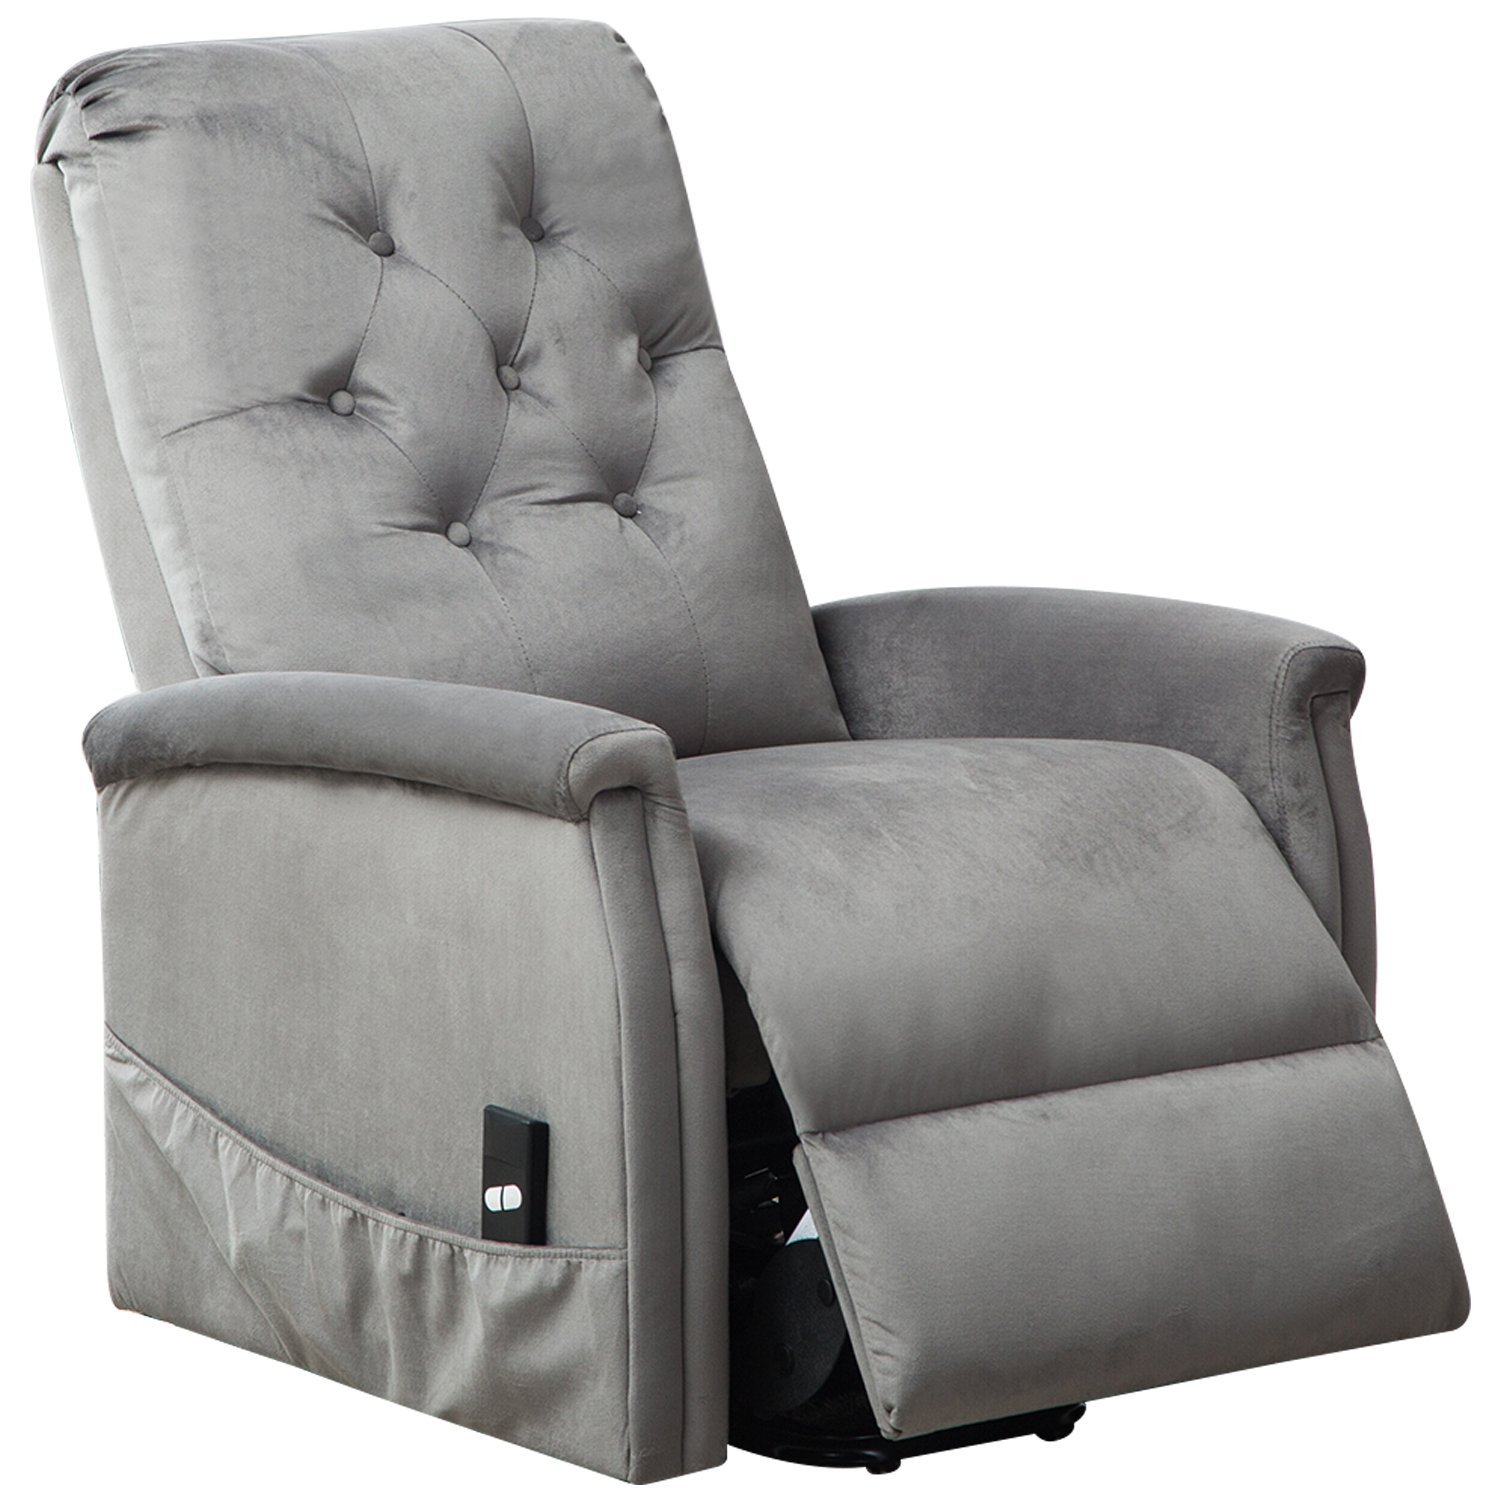 Beau BONZY Power Lift Chair Tufted Recliners Living Room Electric  Lifting/Reclining Chairs Furniture   Light Gray